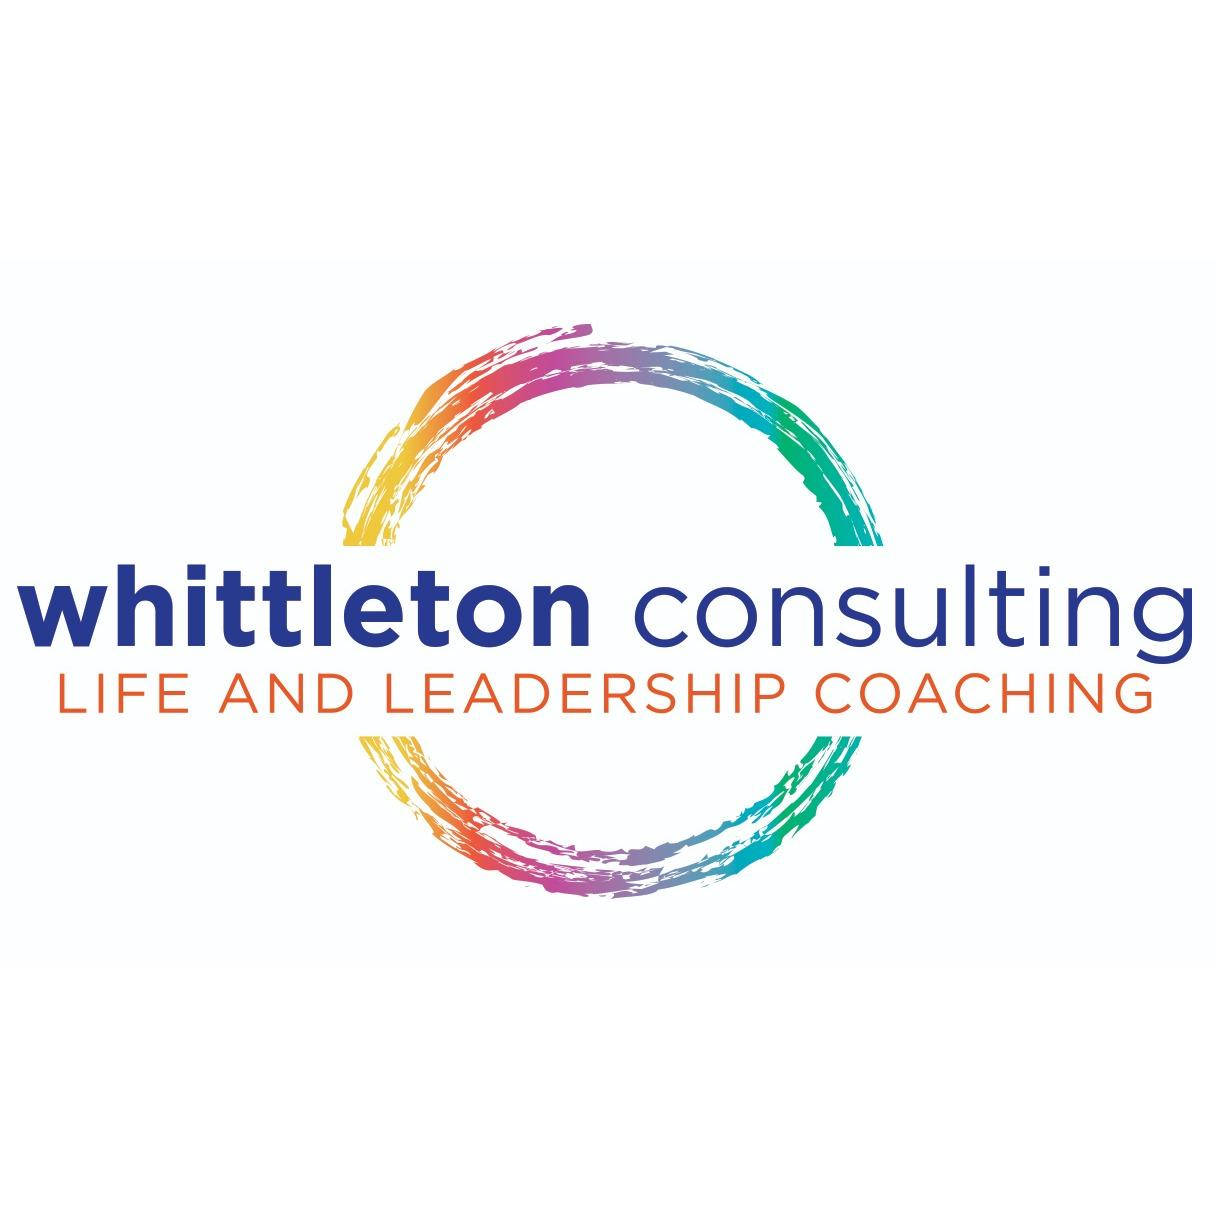 Whittleton Consulting